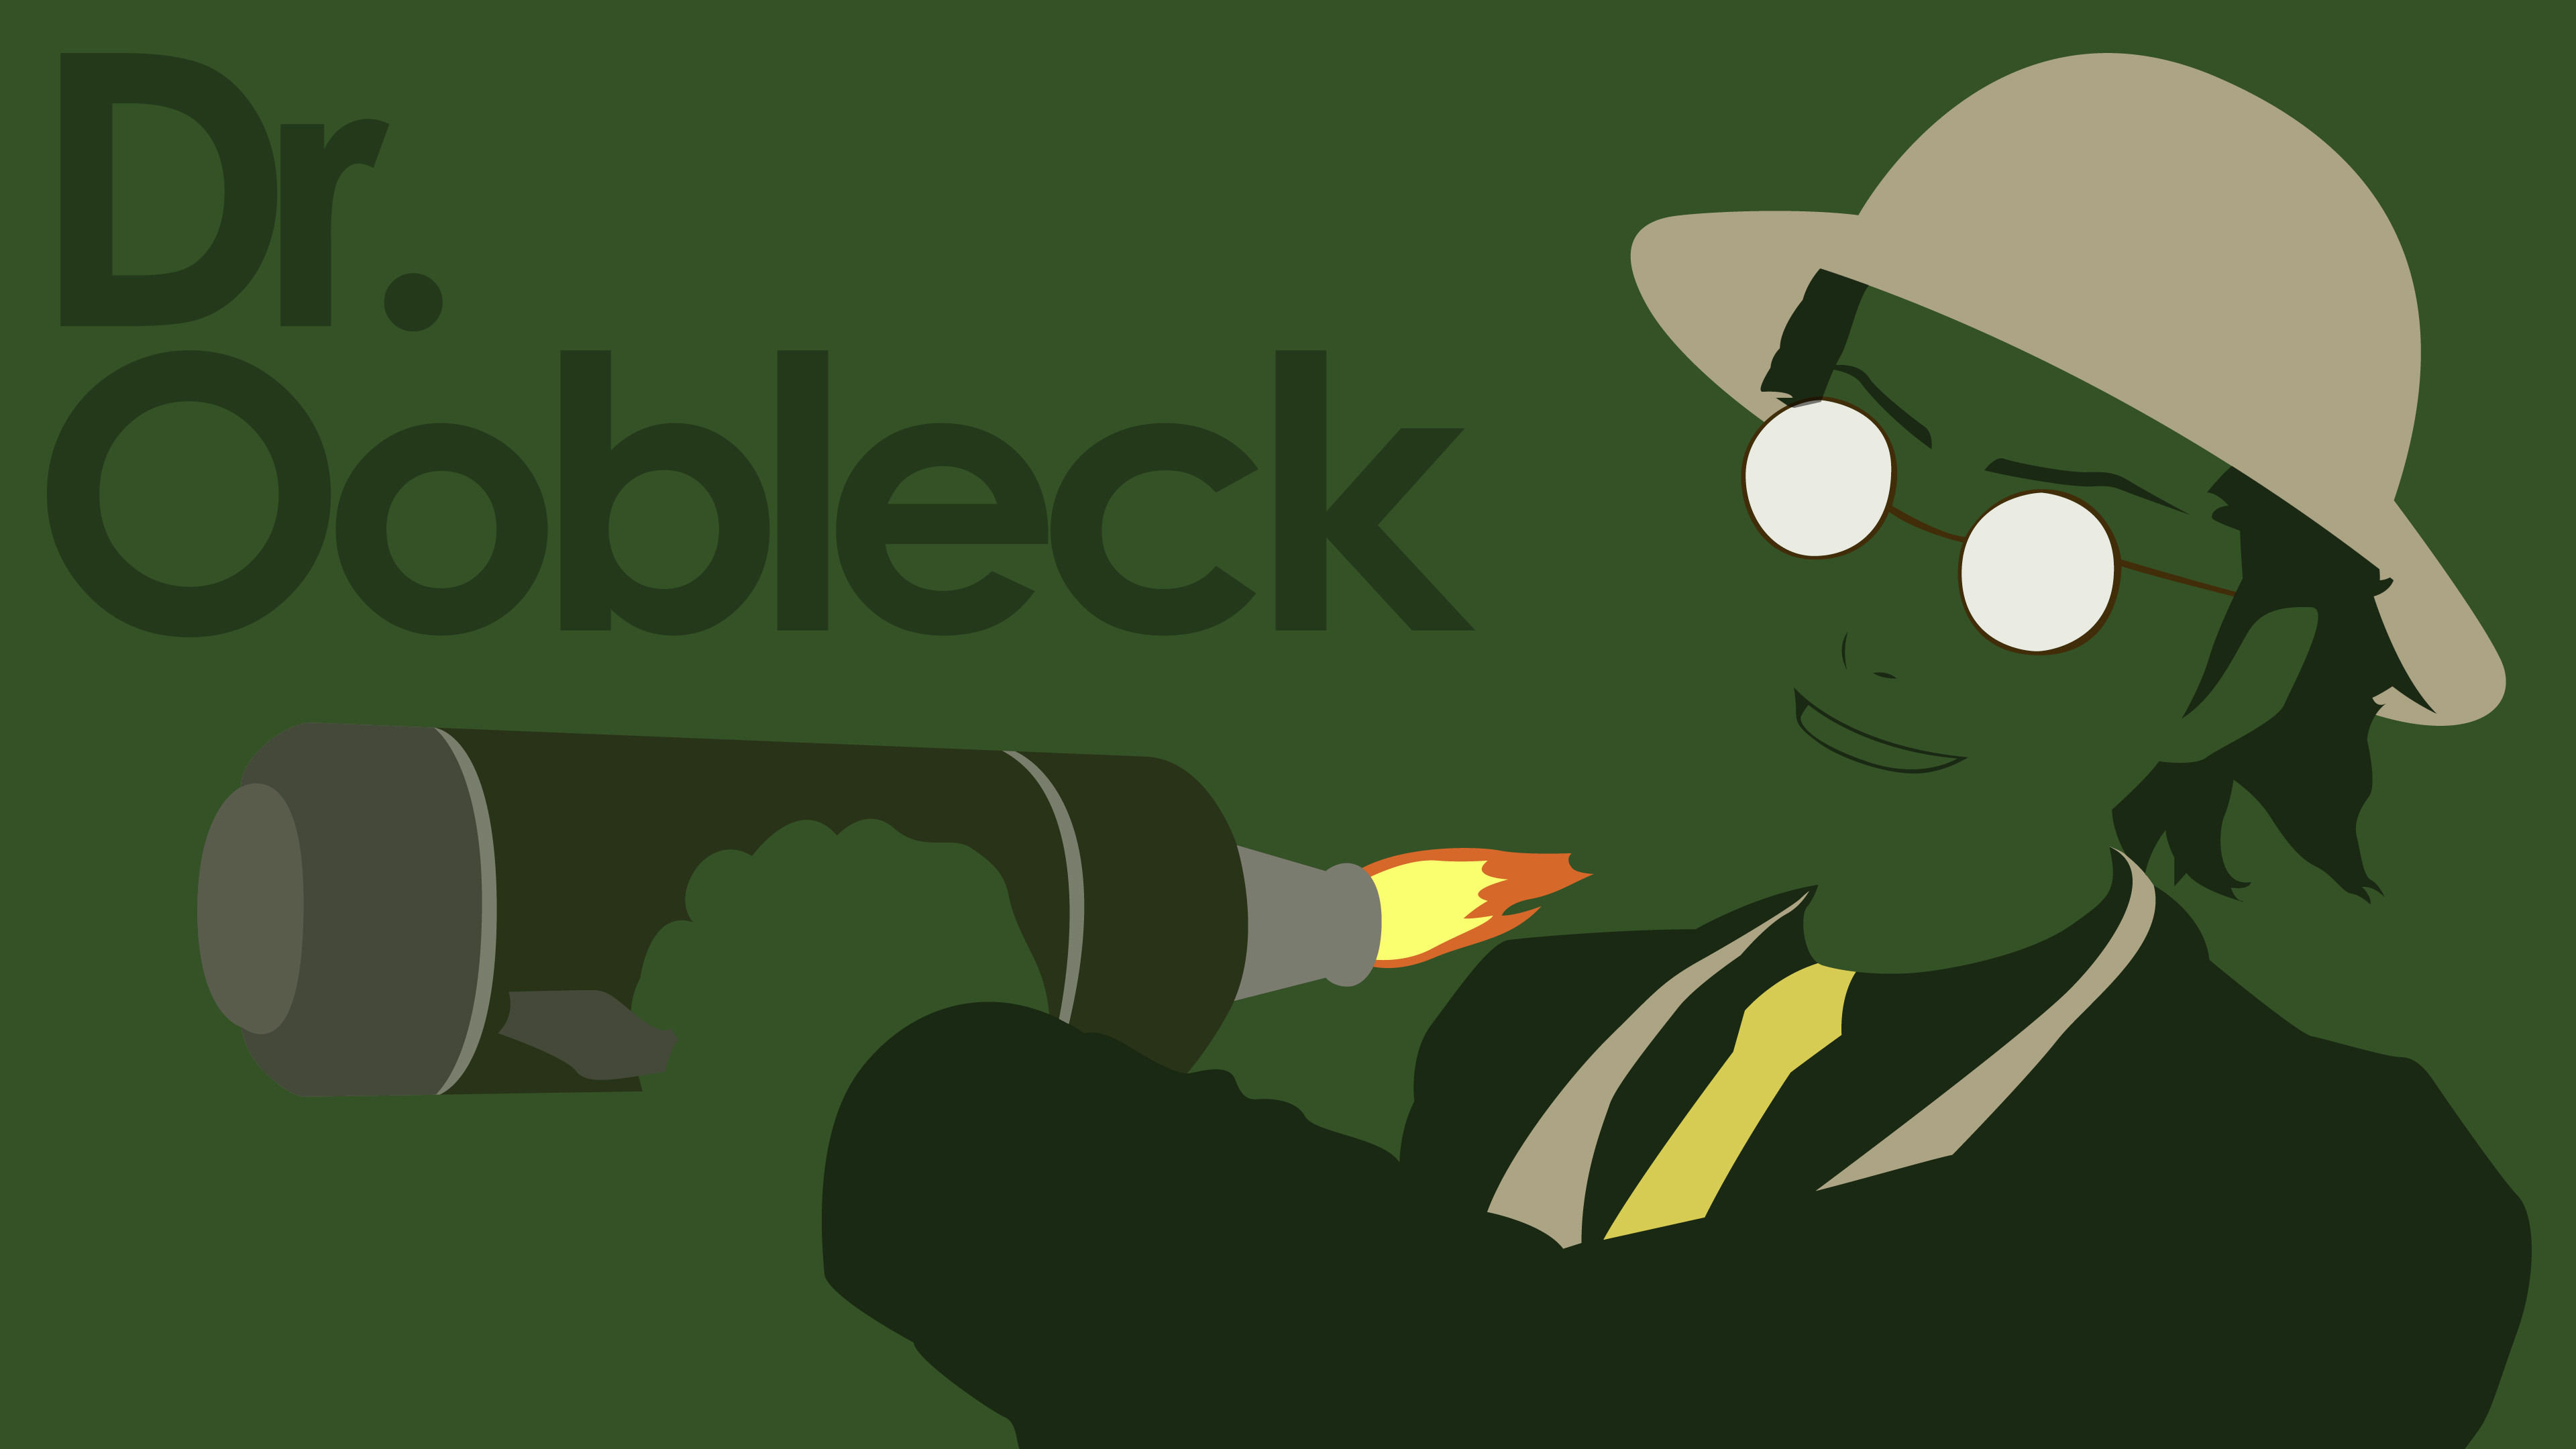 Res: 3840x2160, Dr.Oobleck Wallpaper by DanTherrien101 Dr.Oobleck Wallpaper by  DanTherrien101